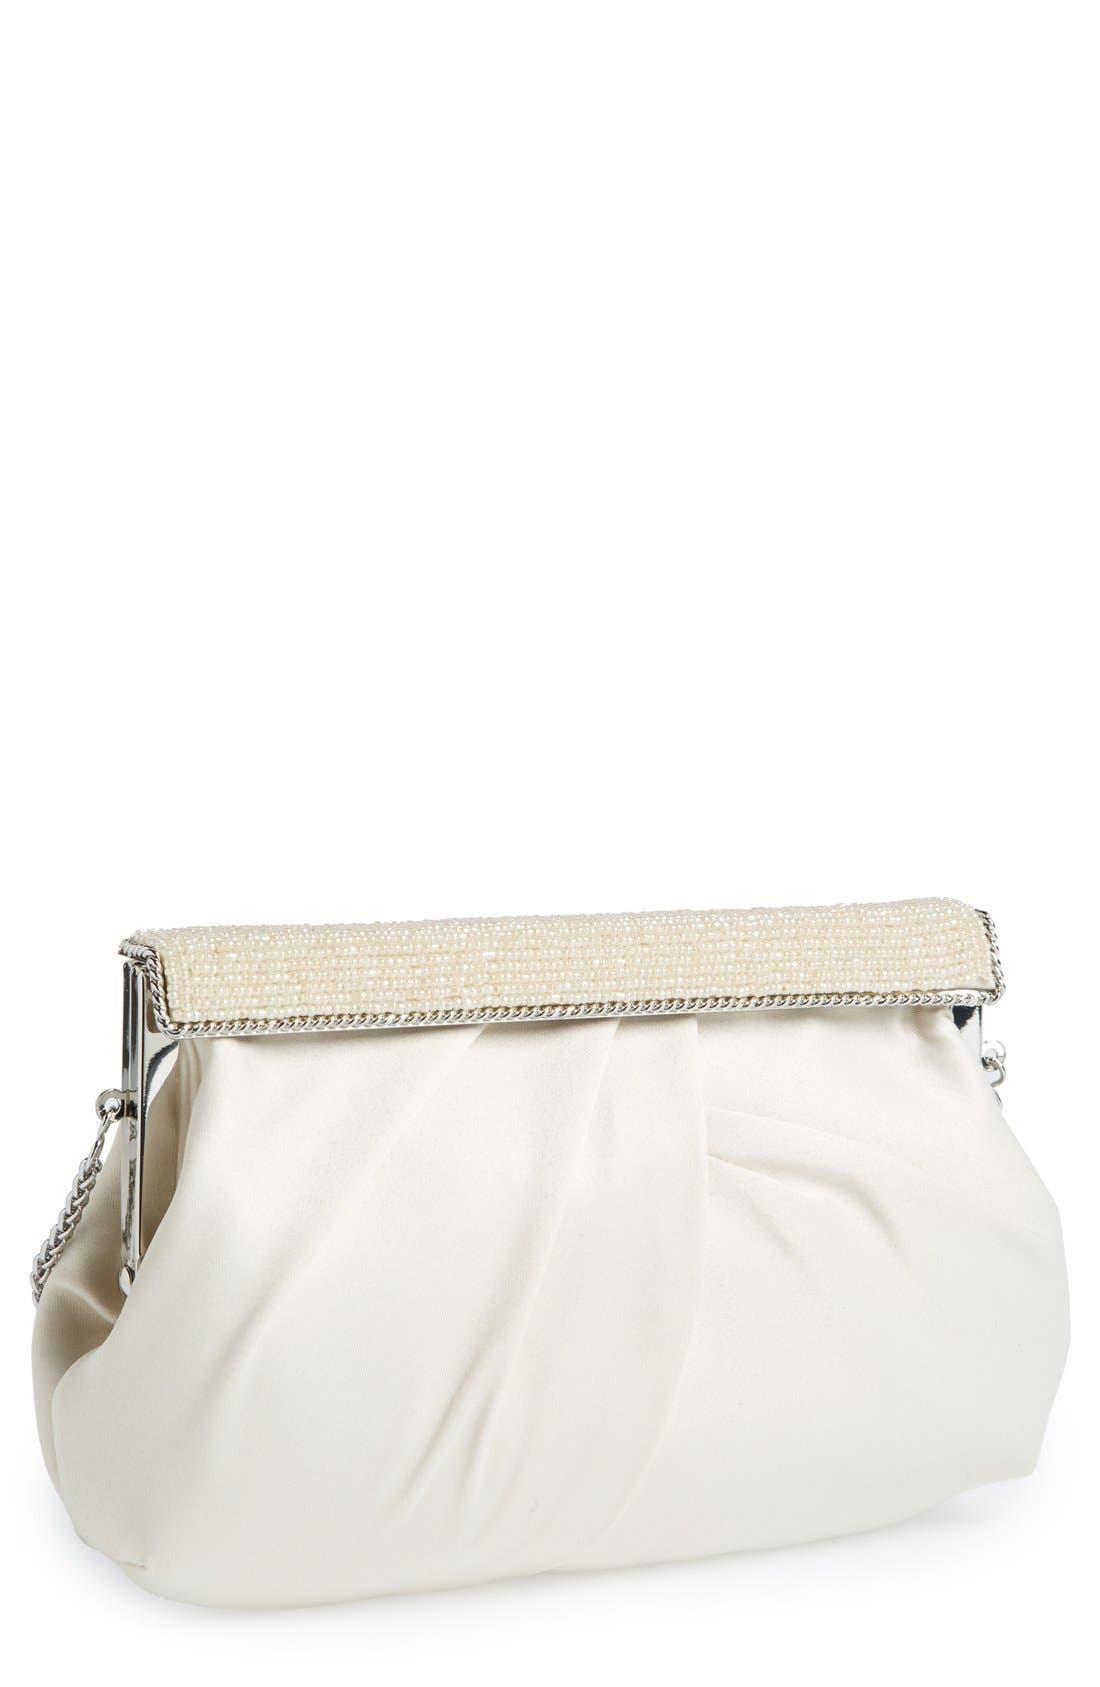 Main Image - Nina 'Lendy' Satin Frame Clutch